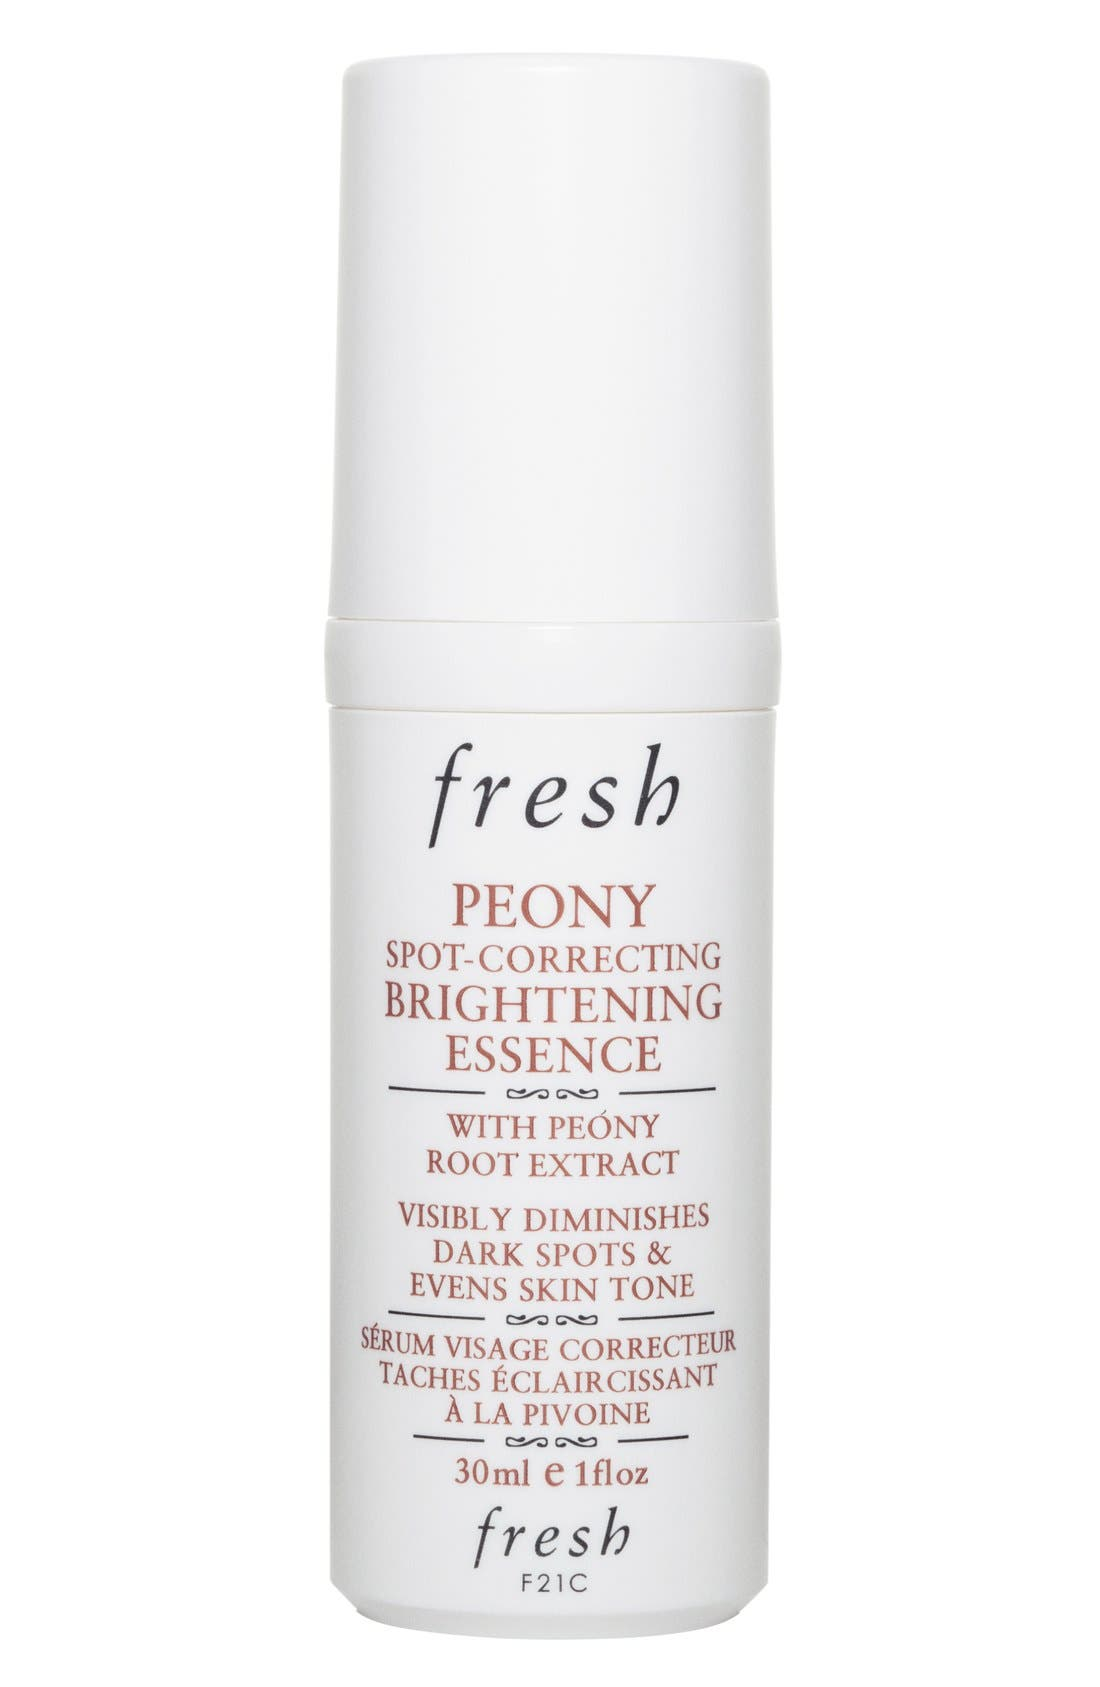 Fresh® Peony Spot-Correcting Brightening Essence